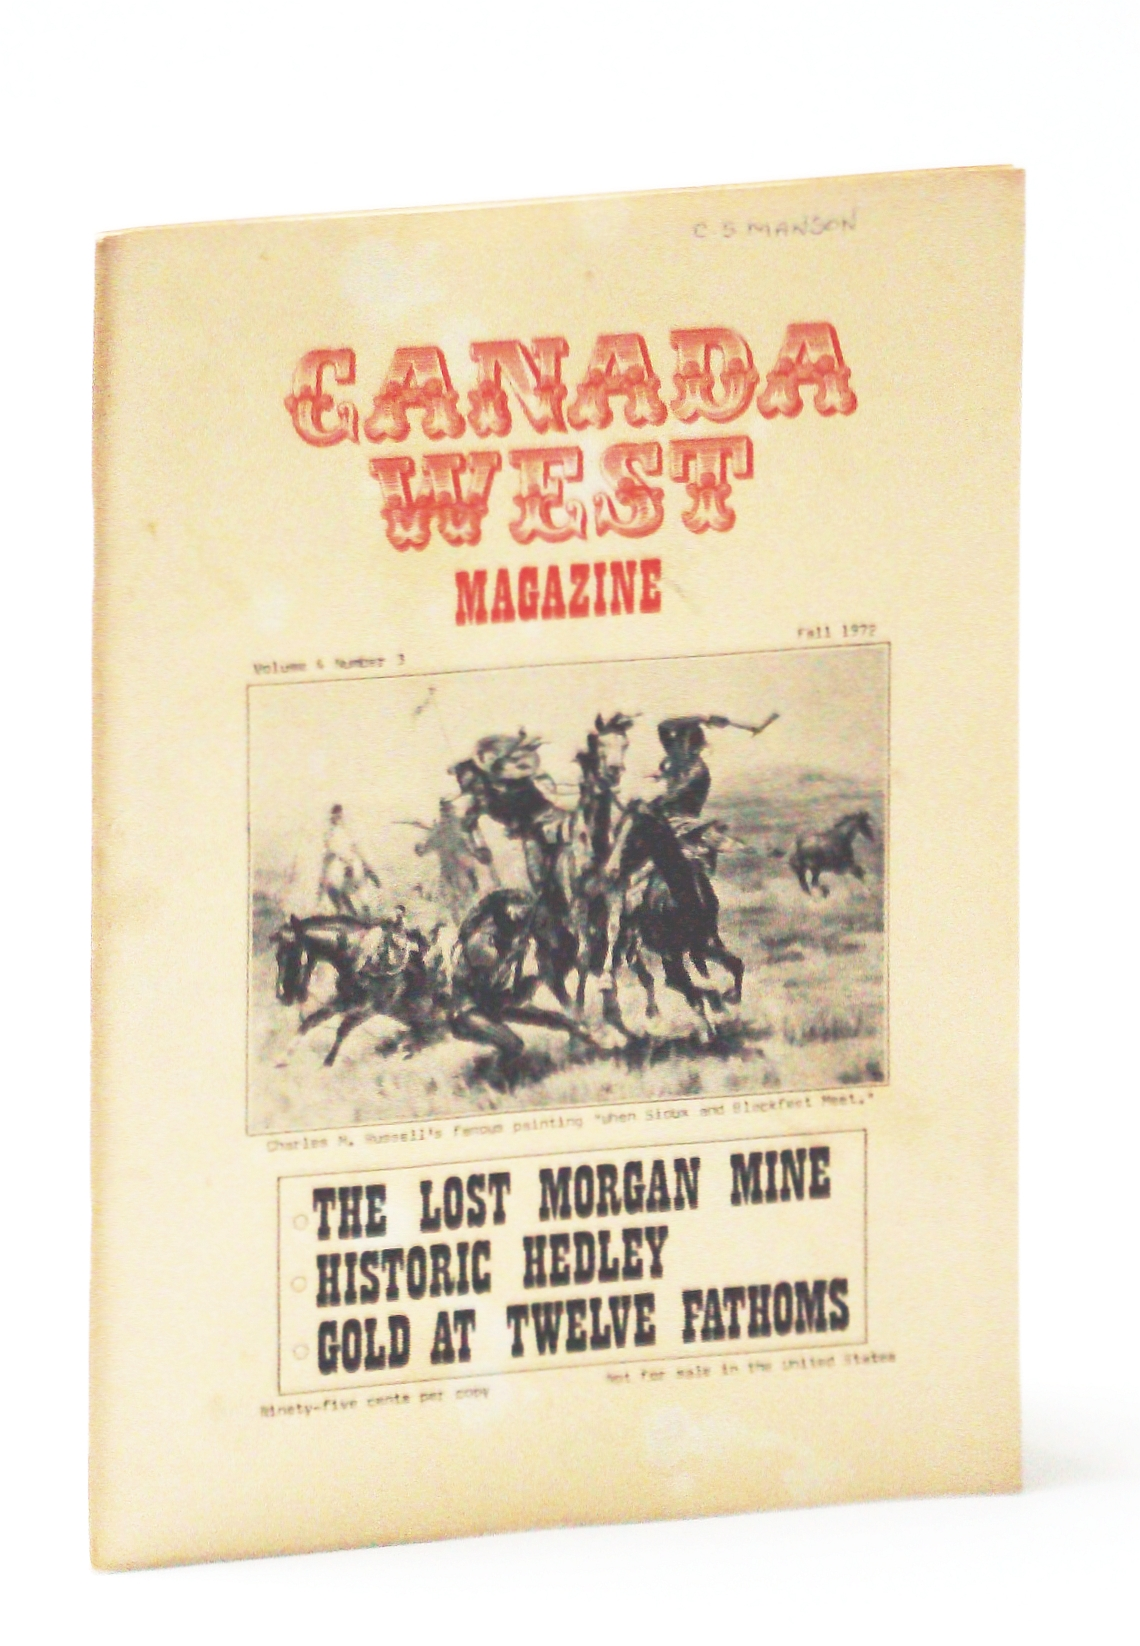 Image for Canada West Magazine, Fall 1972, Volume 4, Number 3 - Lost Morgan Mine / Historic Hedley